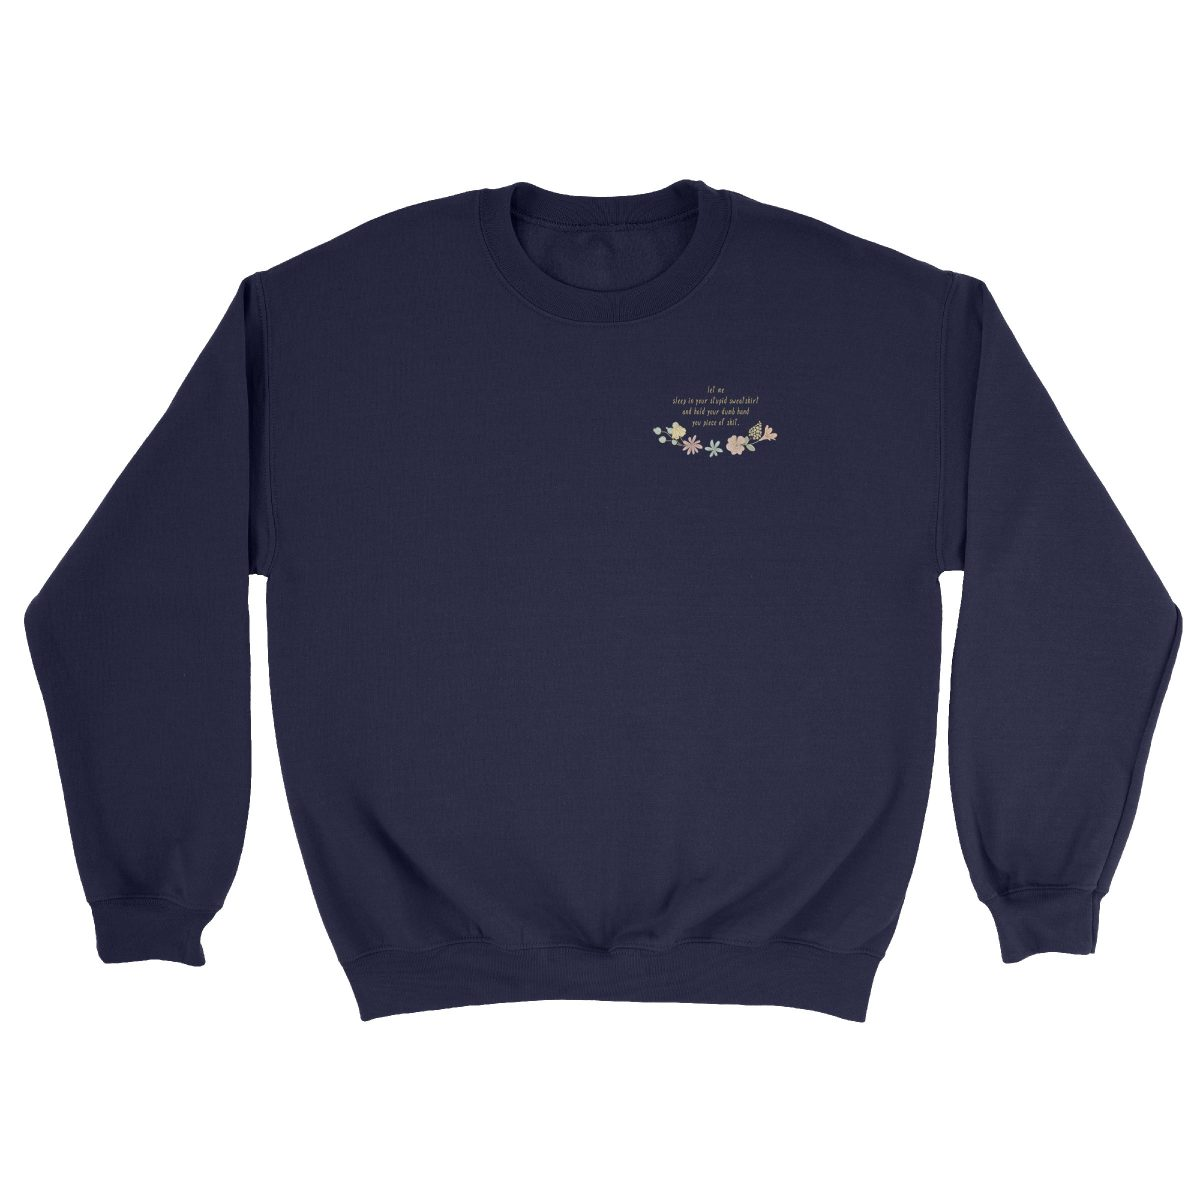 YOUR STUPID SWEATSHIRT navy crew sweatshirt by kikicutt